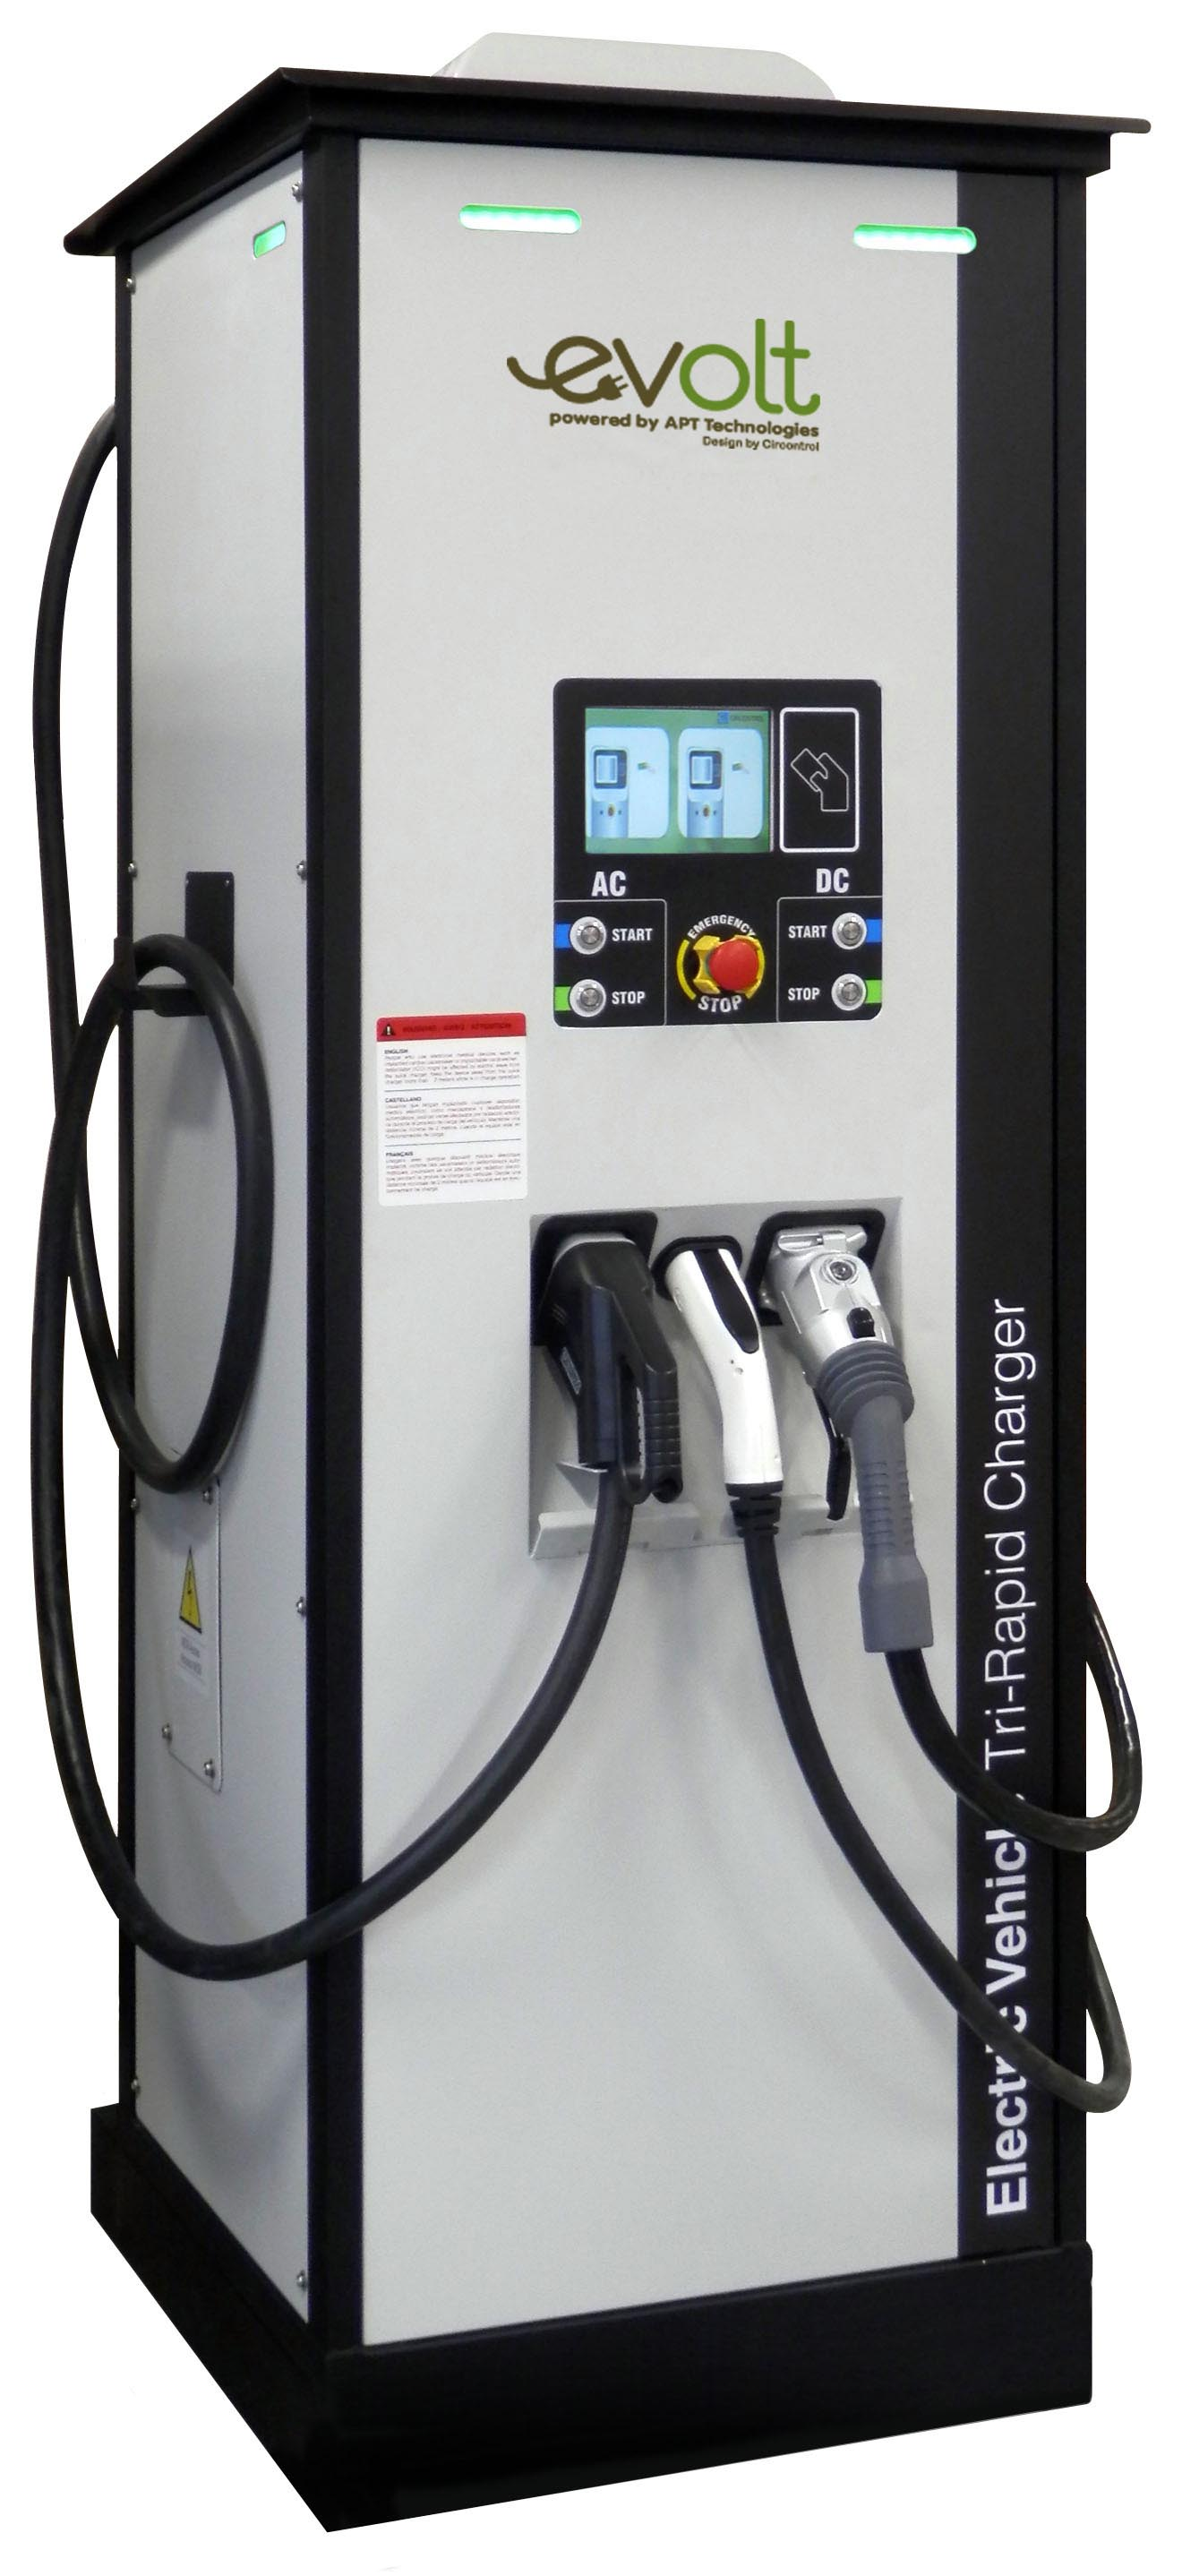 A rapid charger for a business' electric vehicles